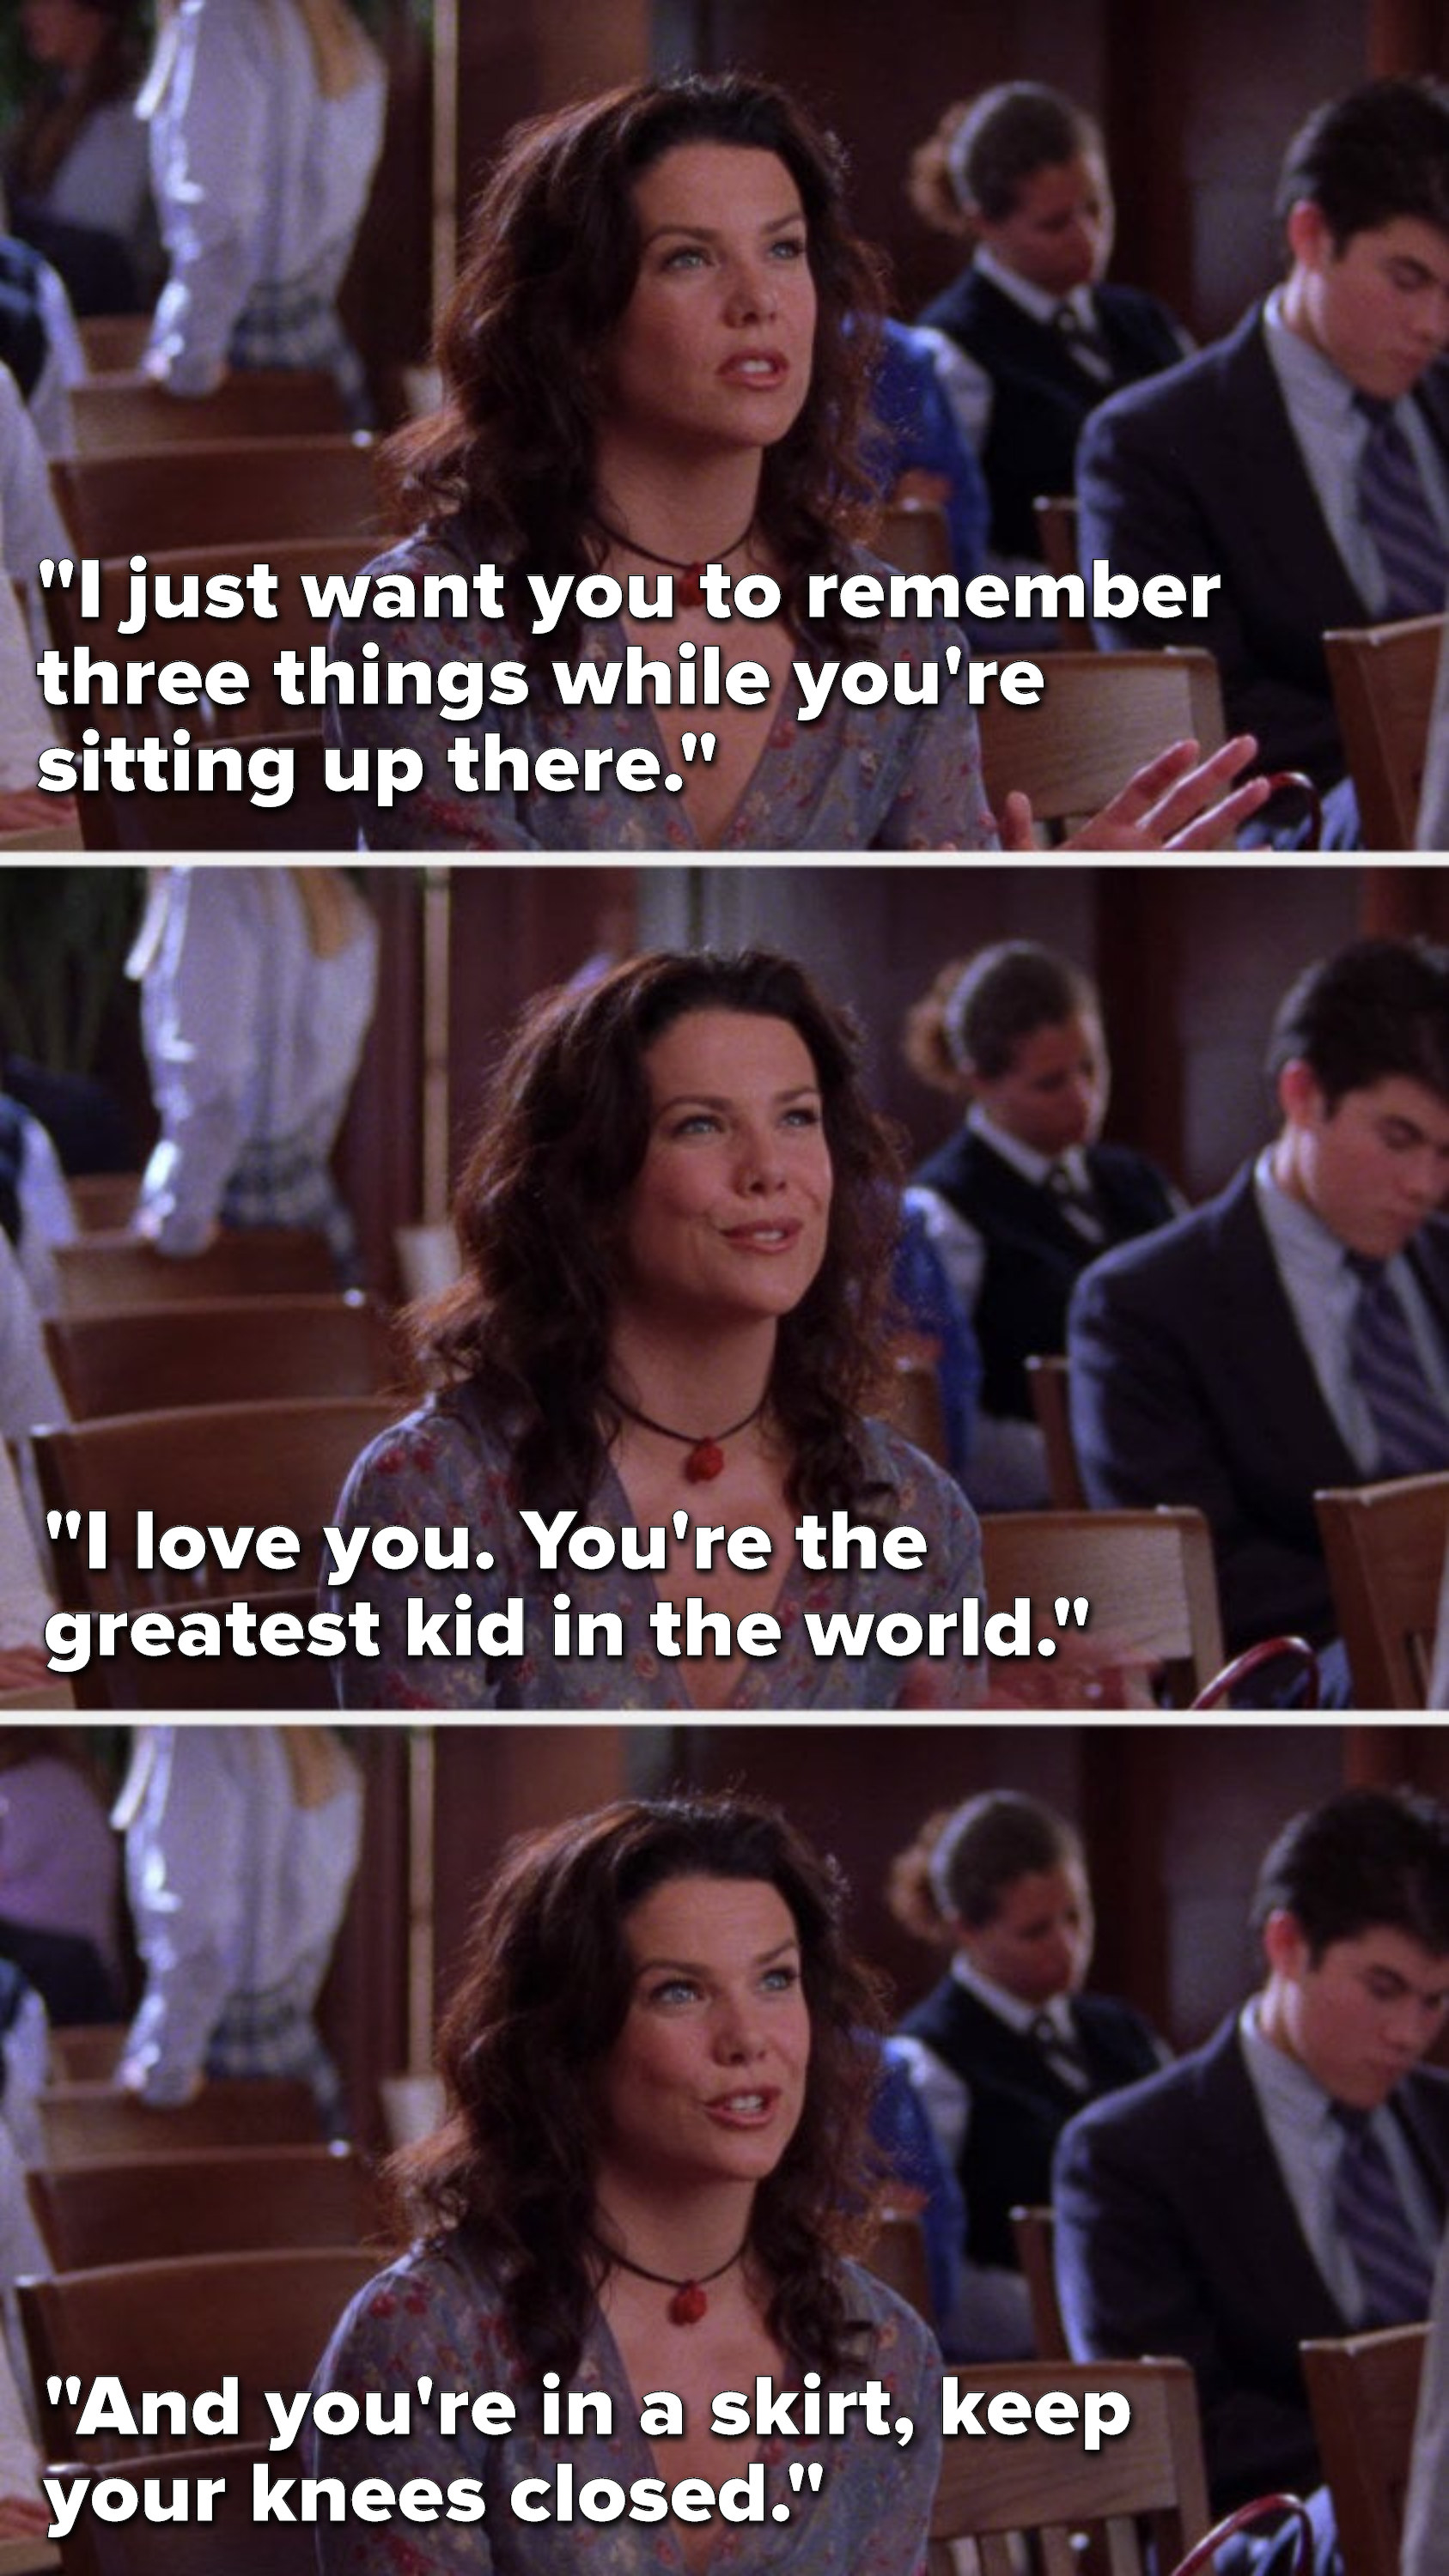 """Lorelai says, """"I just want you to remember three things while you're sitting up there. I love you. You're the greatest kid in the world. And you're in a skirt. Keep your knees closed."""""""